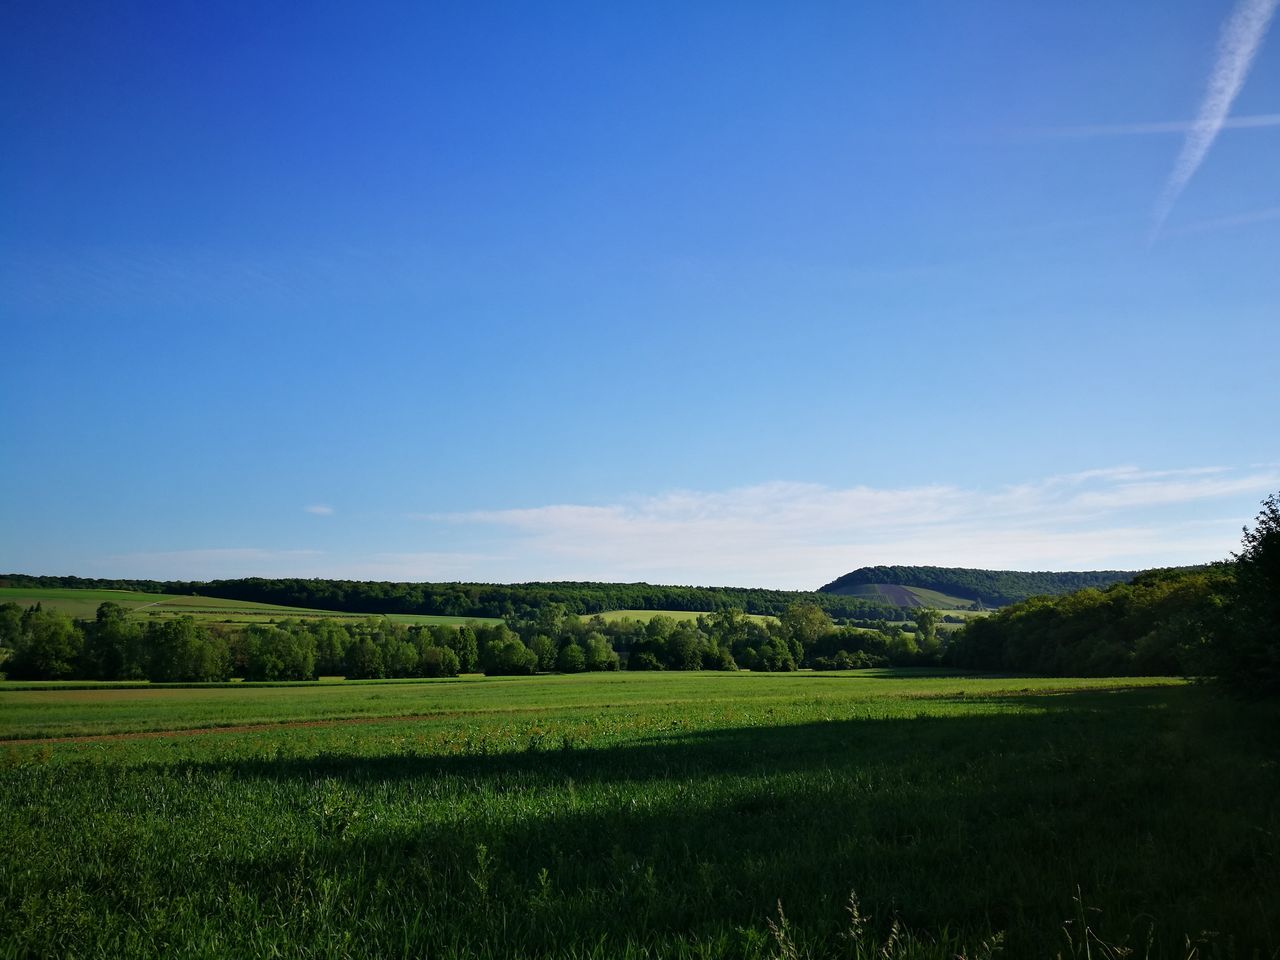 nature, tranquility, tranquil scene, beauty in nature, field, landscape, no people, scenics, day, green color, outdoors, grass, blue, tree, growth, sky, clear sky